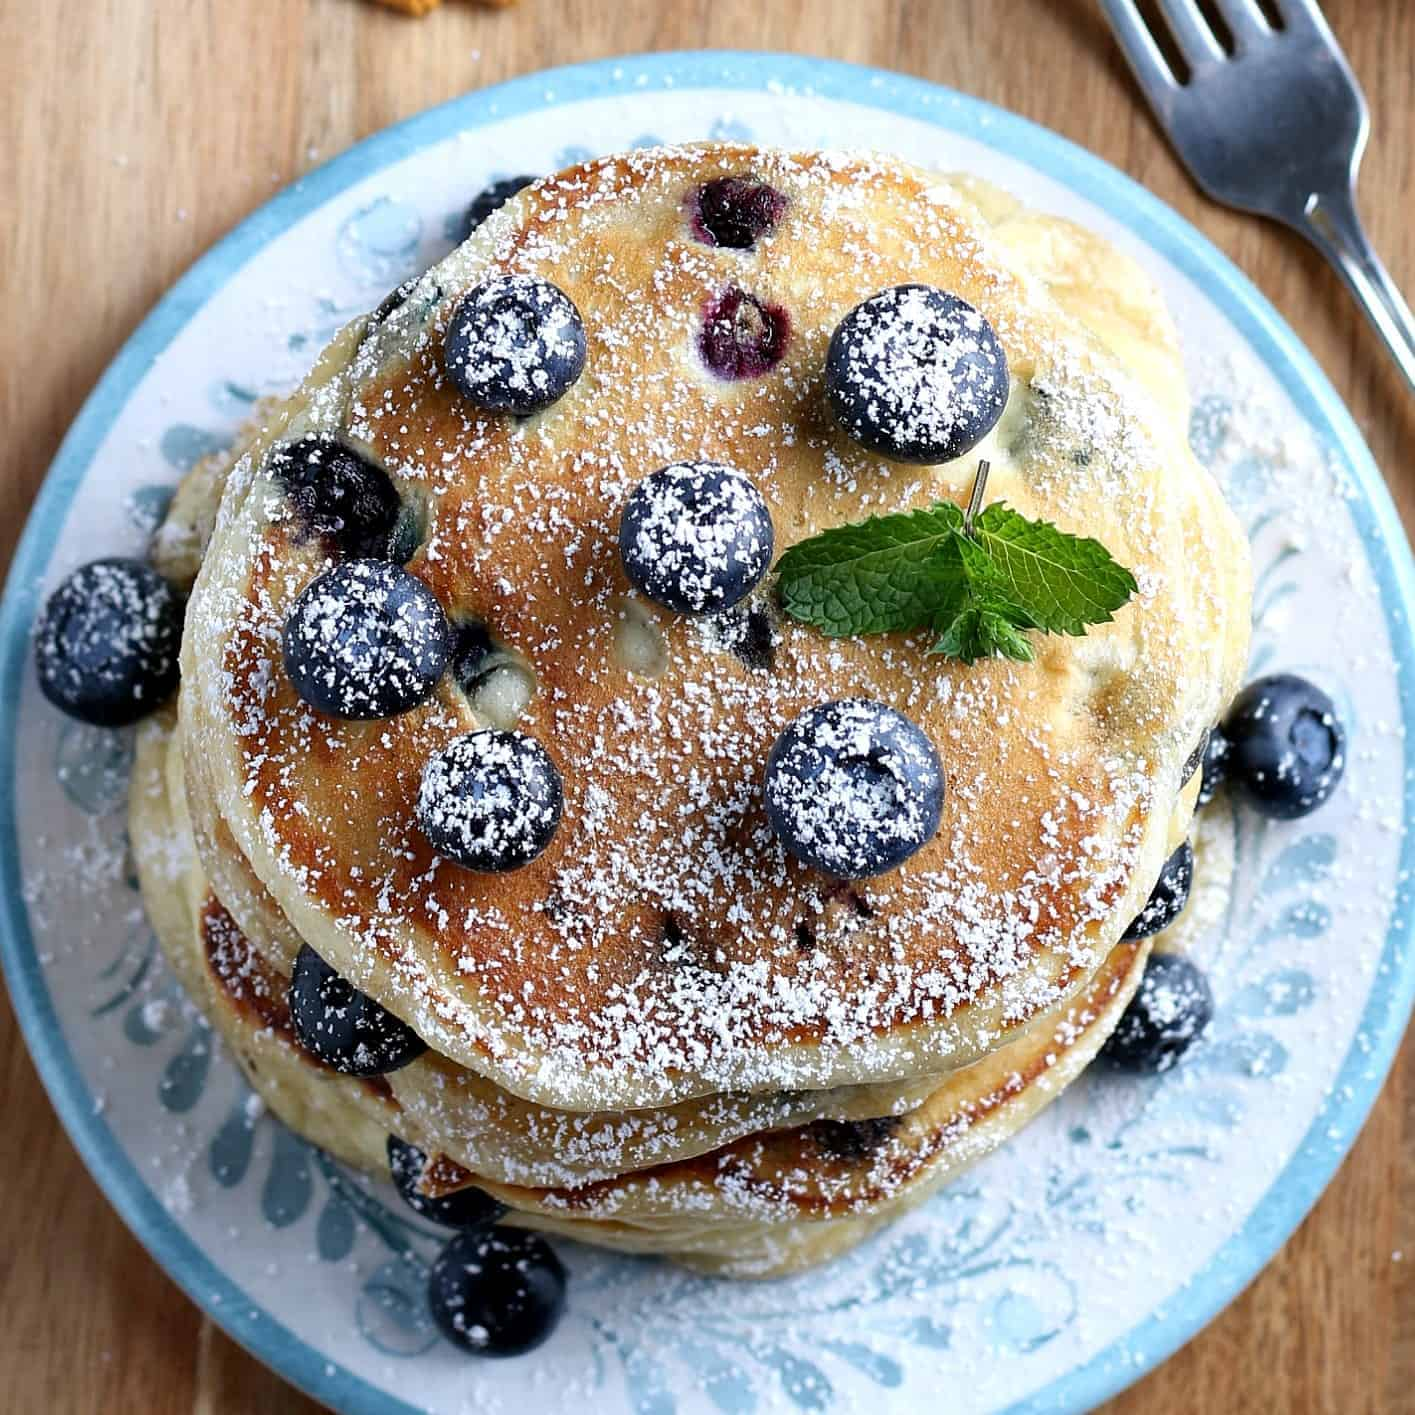 Overhead view of a stack of pancakes covered with blueberries and powdered sugar.